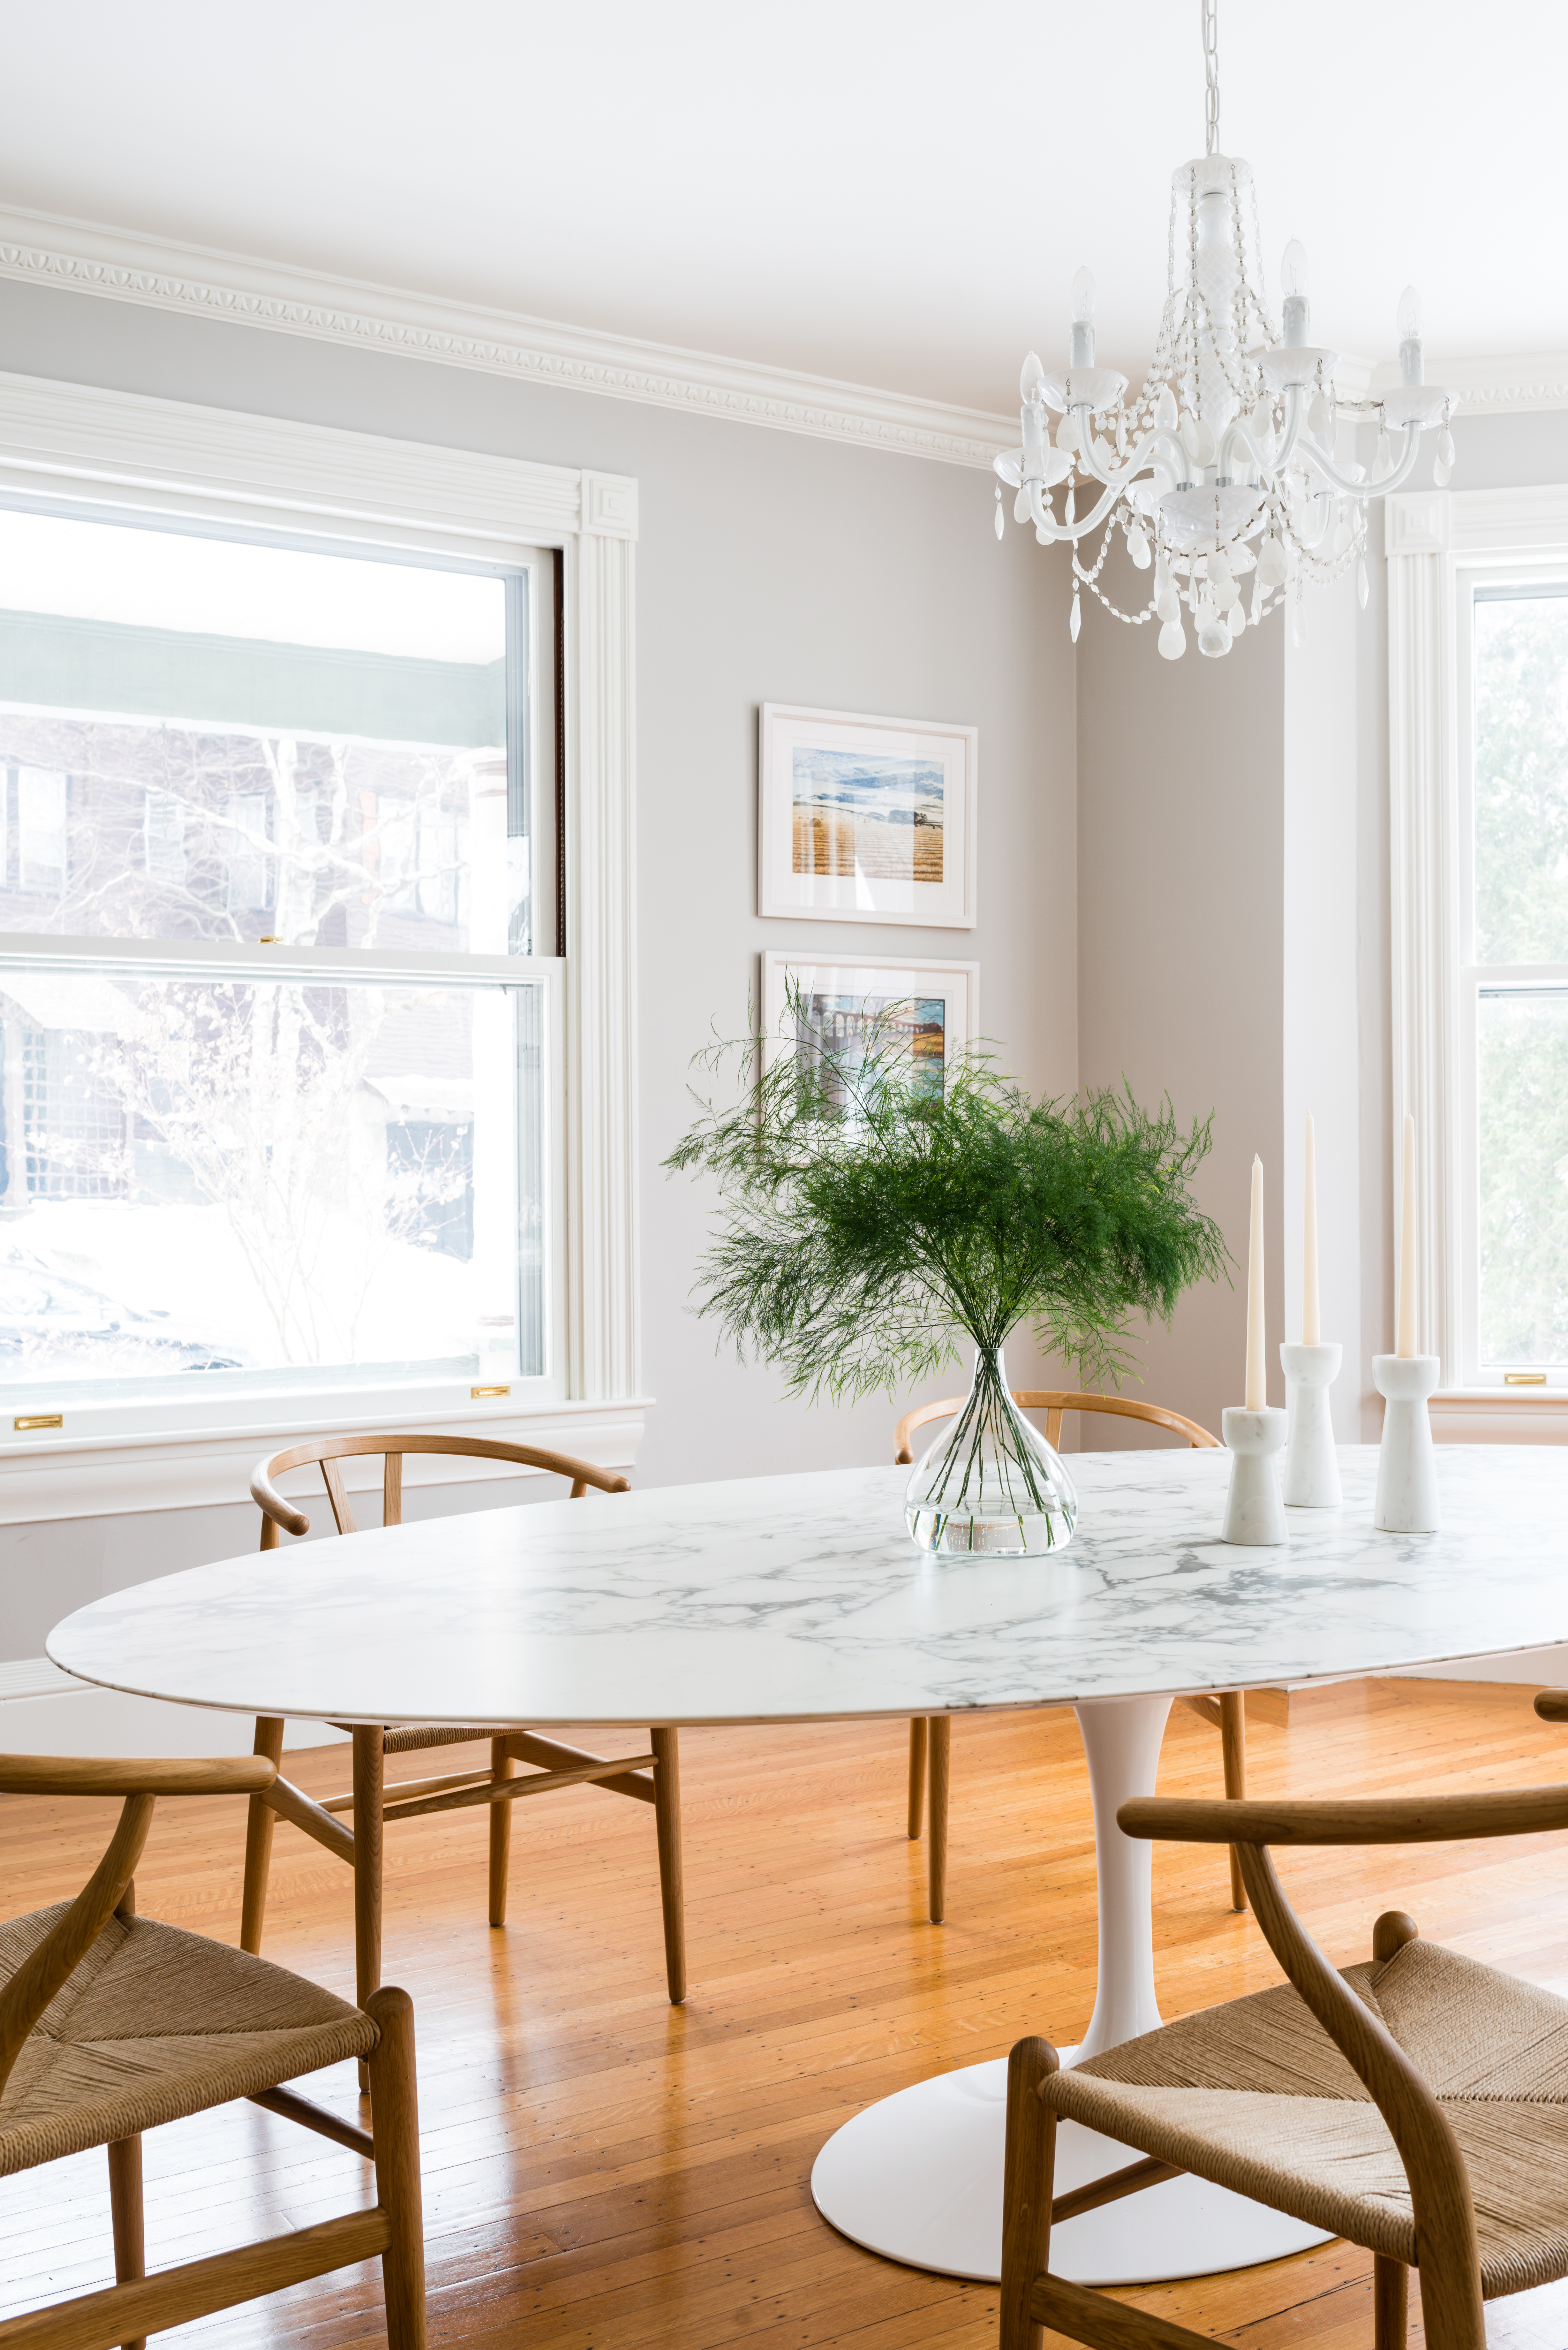 Justine Sterling Brookline home renovation contractor